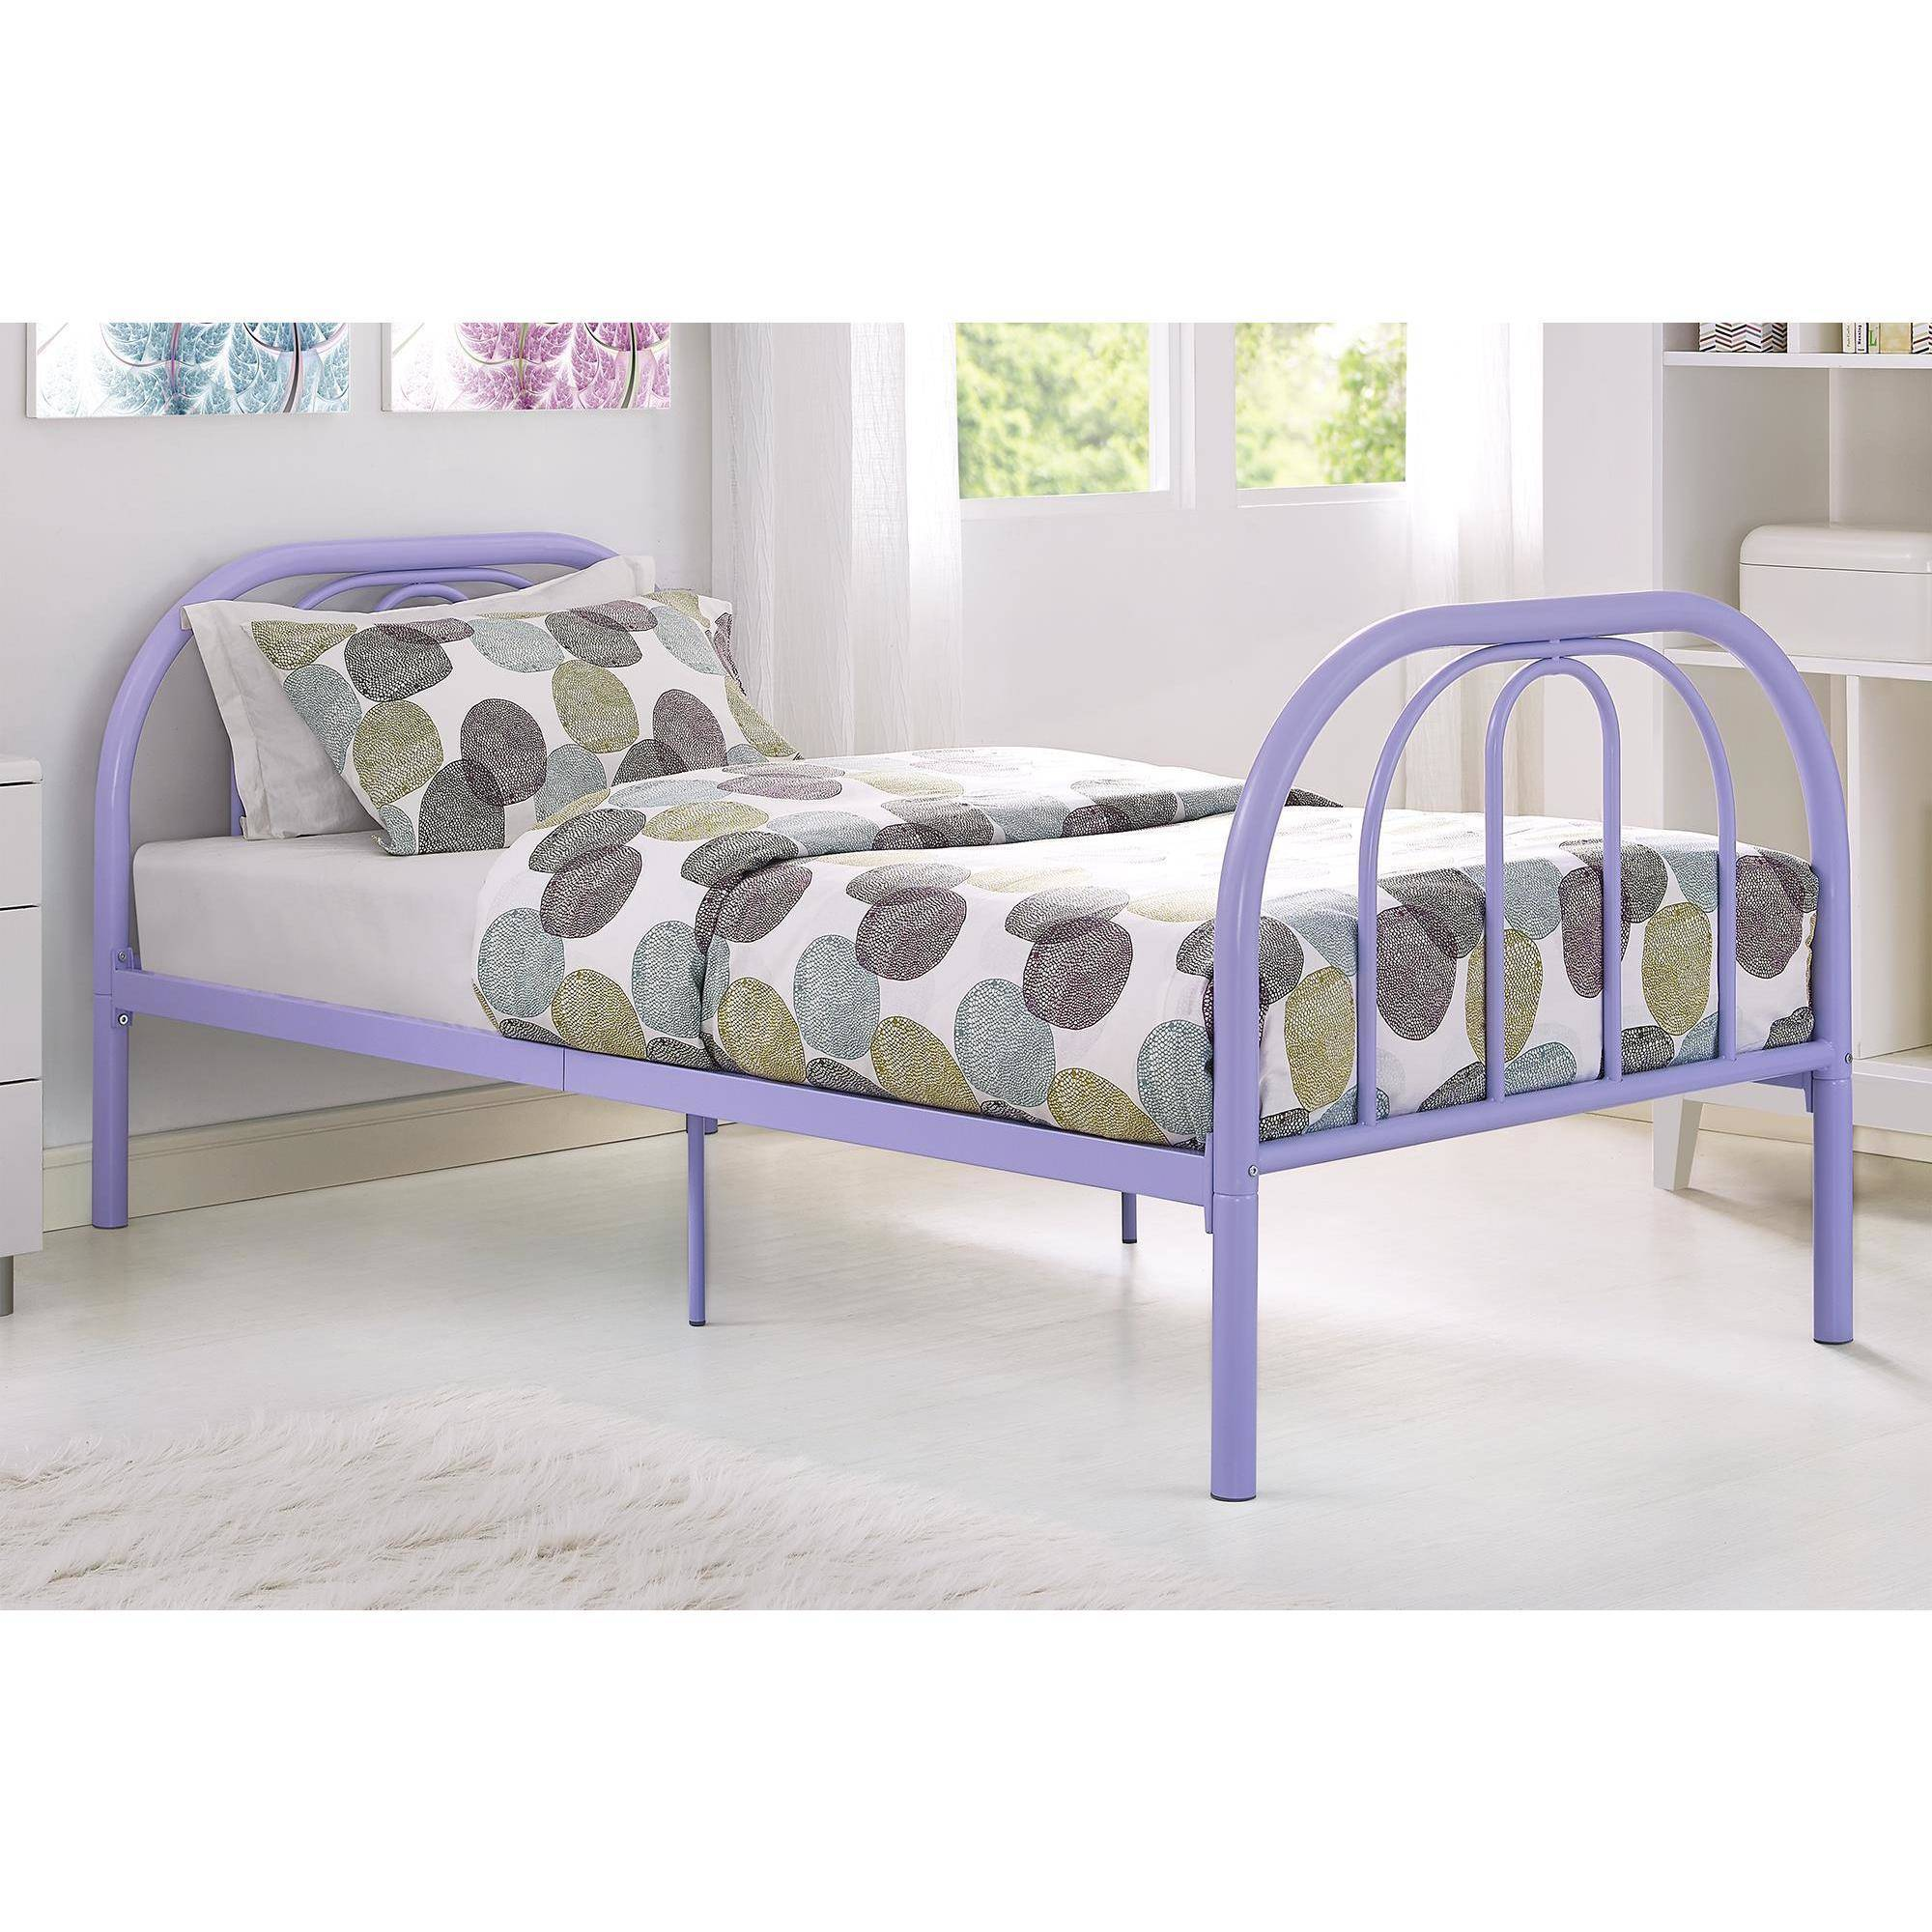 twin size bed frame metal frame childrens twin